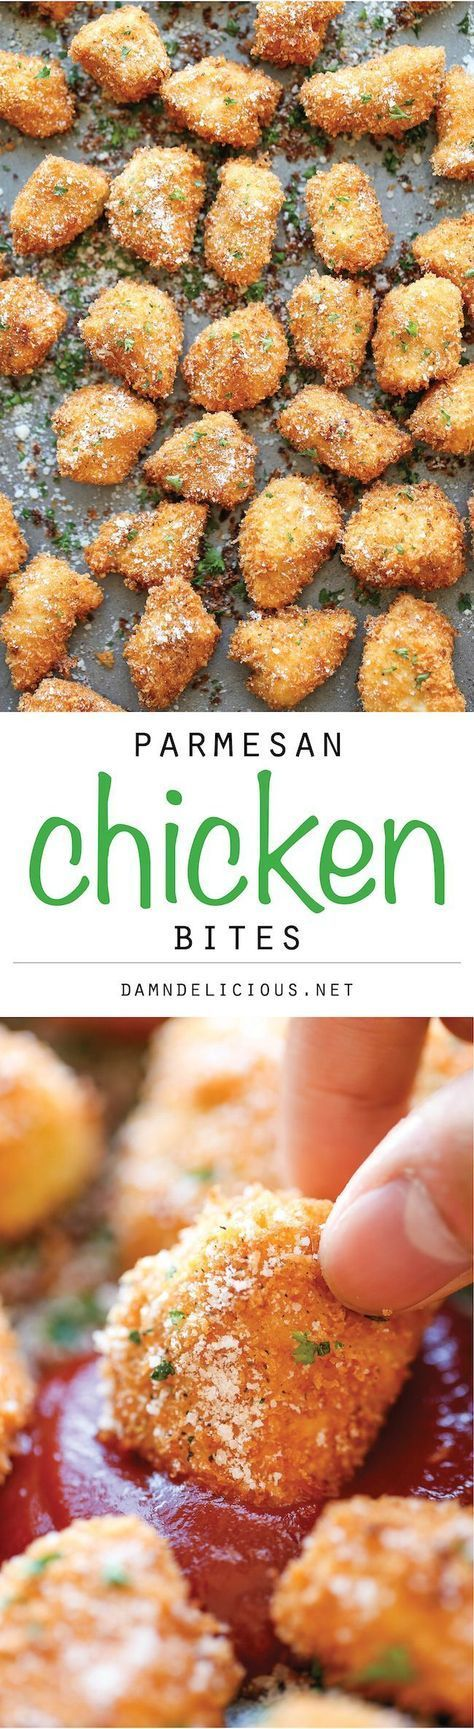 These Parmesan Chicken Bites are the perfect after school snack, game day bite or potluck addition. Simple and delicious your guests will love them.